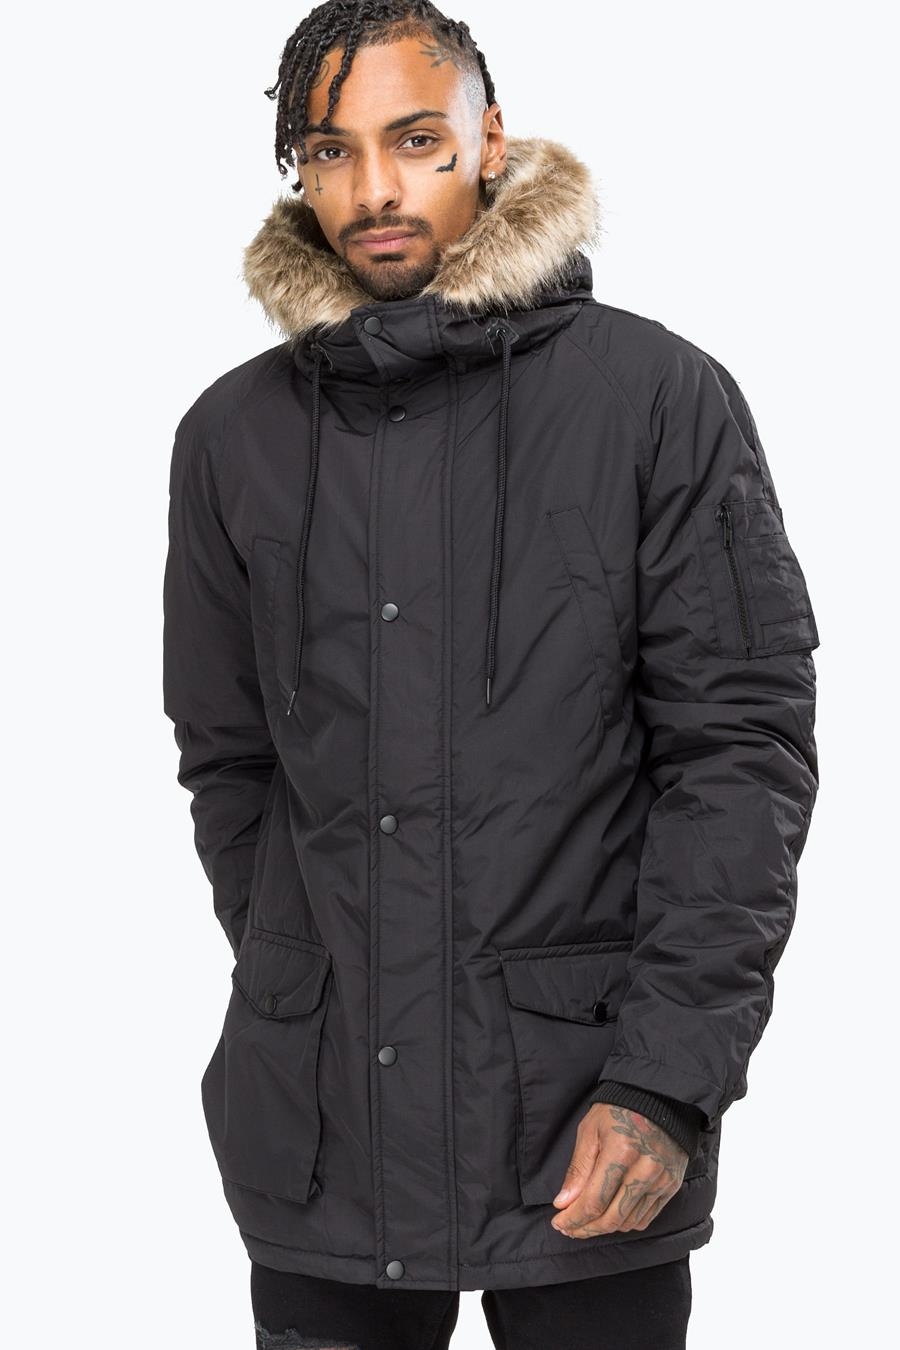 more photos new arrivals to buy HYPE BLACK TRACK MASTER MENS PARKA JACKET